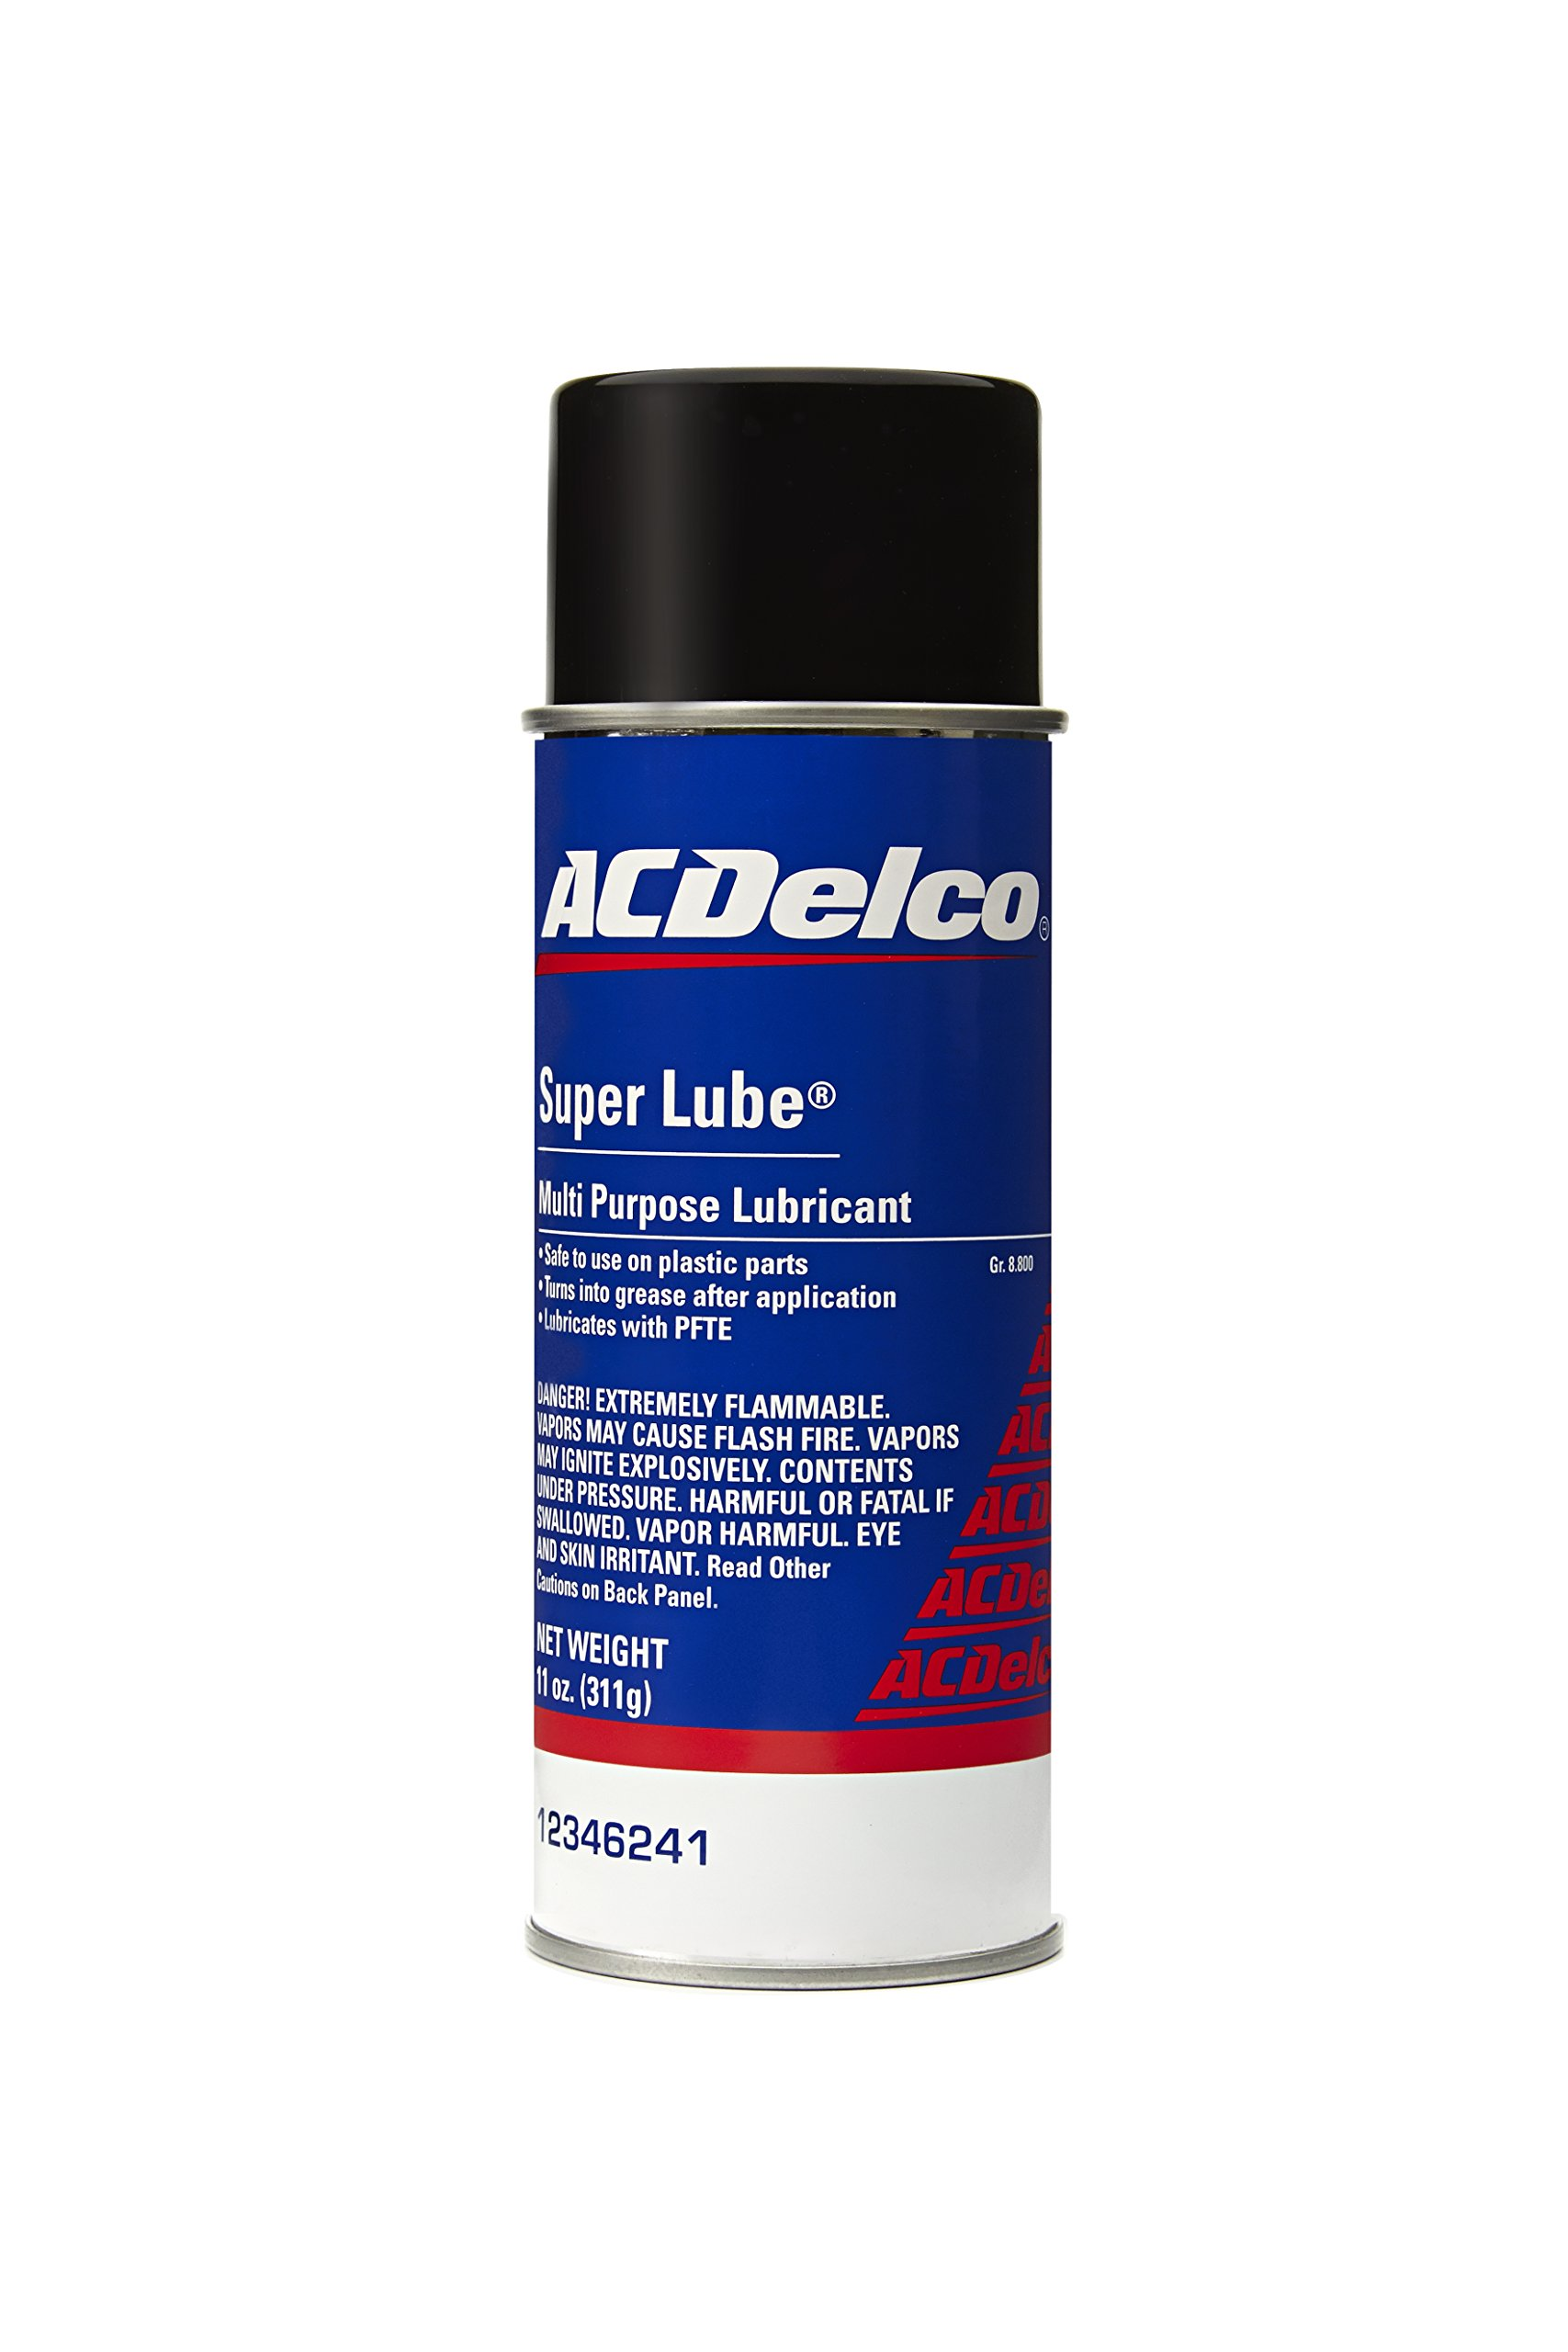 ACDelco 12346241 Synthetic Multi-Purpose Glycol Lubricant - 11 oz Spray by ACDelco